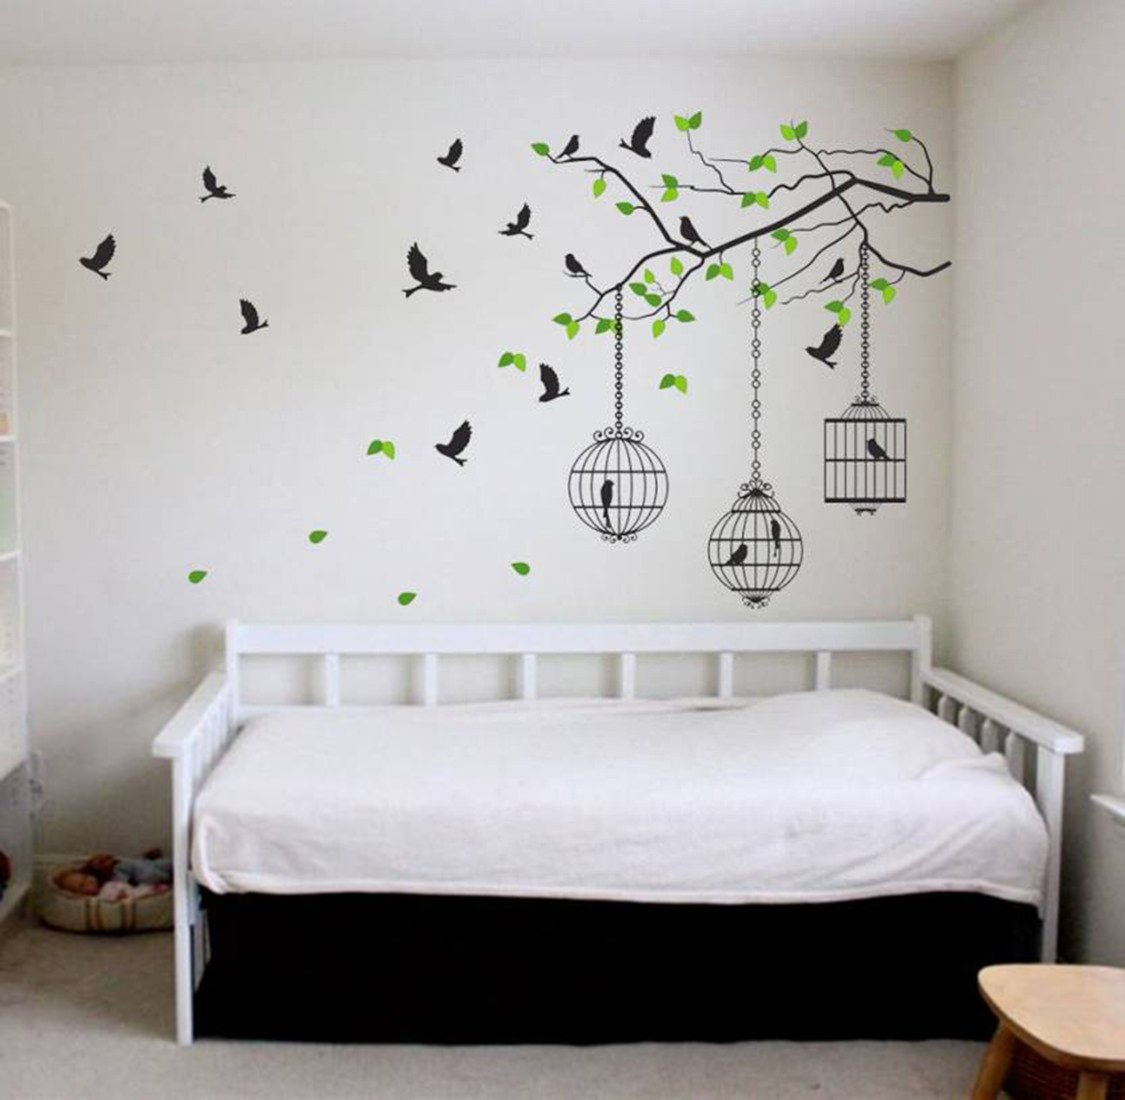 Buy Decals Design Tree Branches With Leaves Birds And Cages Wall Sticker Pvc Vinyl 50 Cm X 70 Cm Multicolour Online At Low Prices In India Amazon In